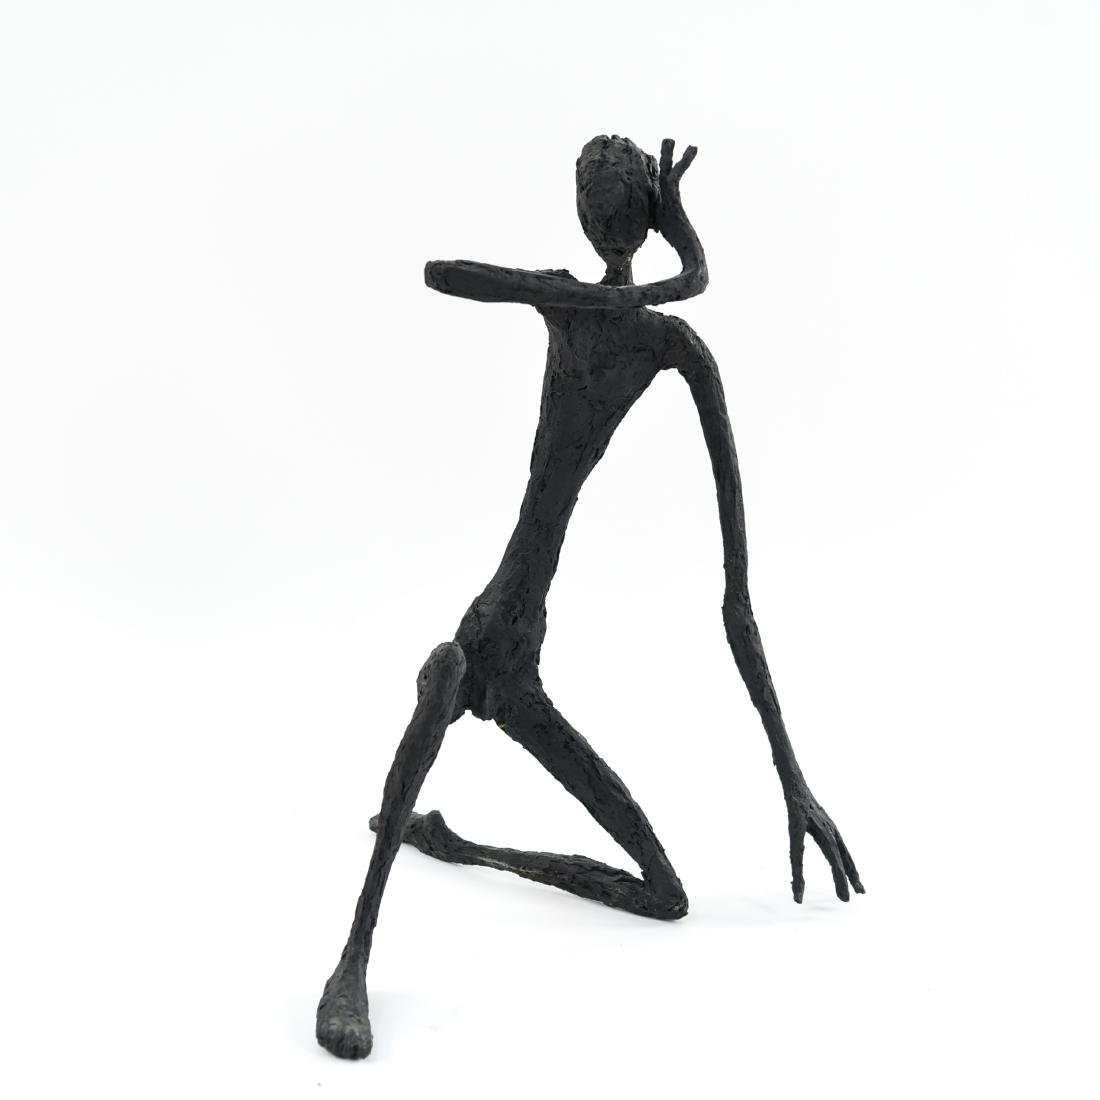 HARRY STUMP ABSTRACT FIGURE FIBERGLASS SCULPTURE - 6